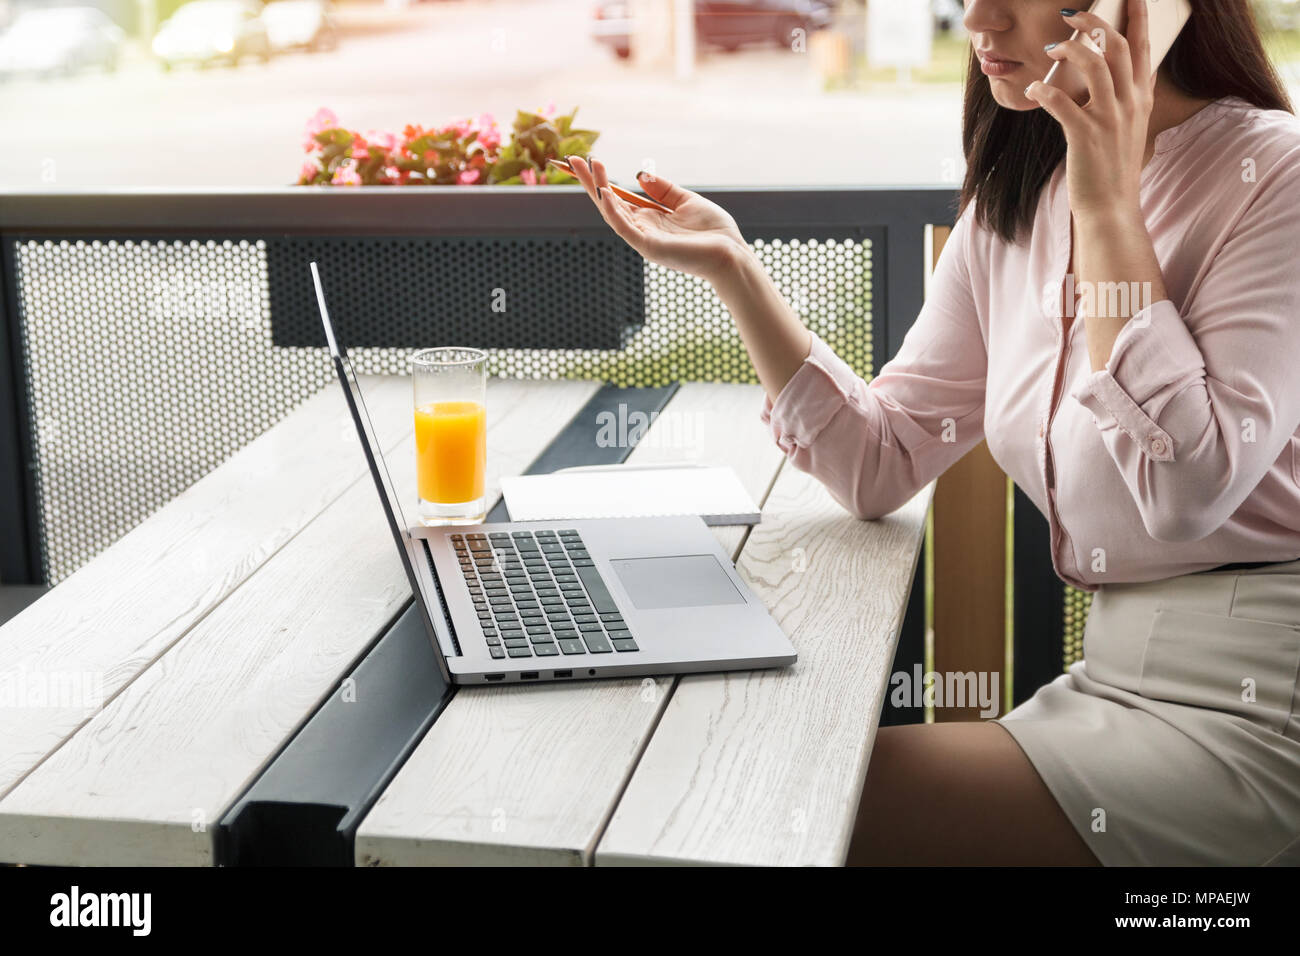 Young business woman speaking on the phone and gesticulating holding a pencil, laptop and juice on desk. - Stock Image